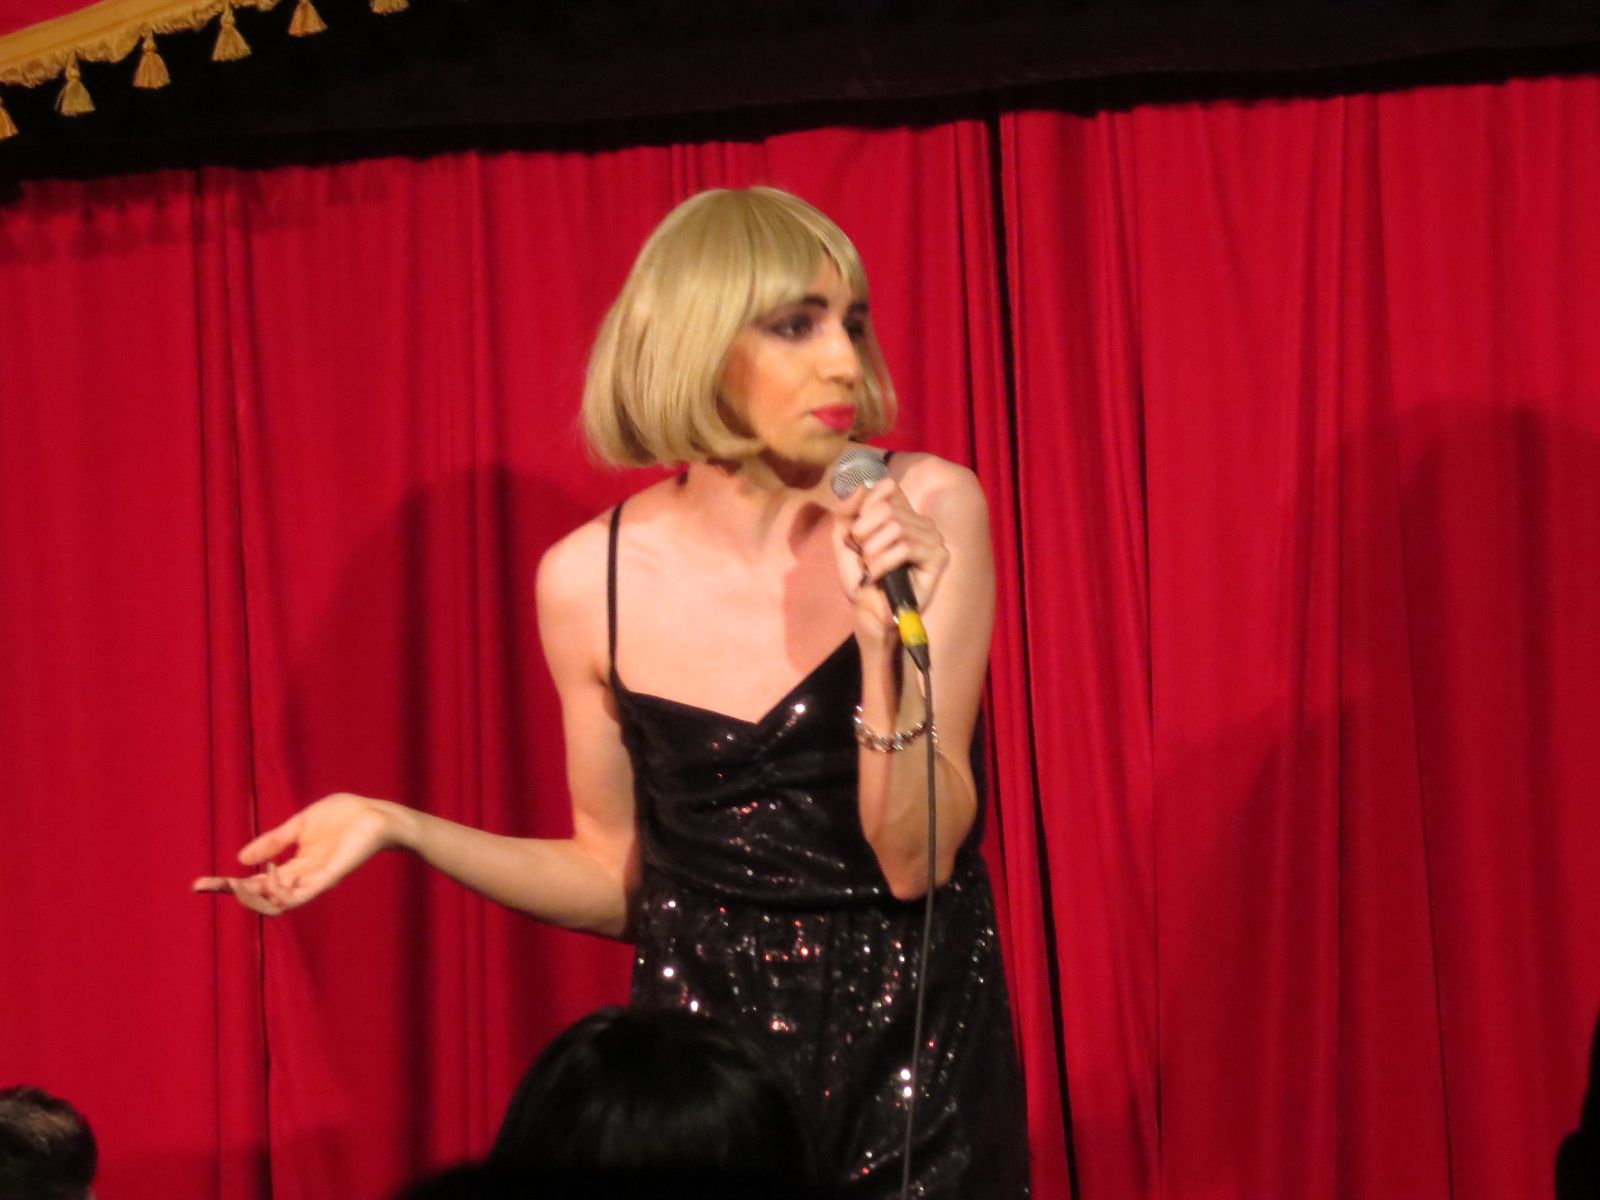 Plenty Of Cheek At Wiggle Room S First Signature Boylesque